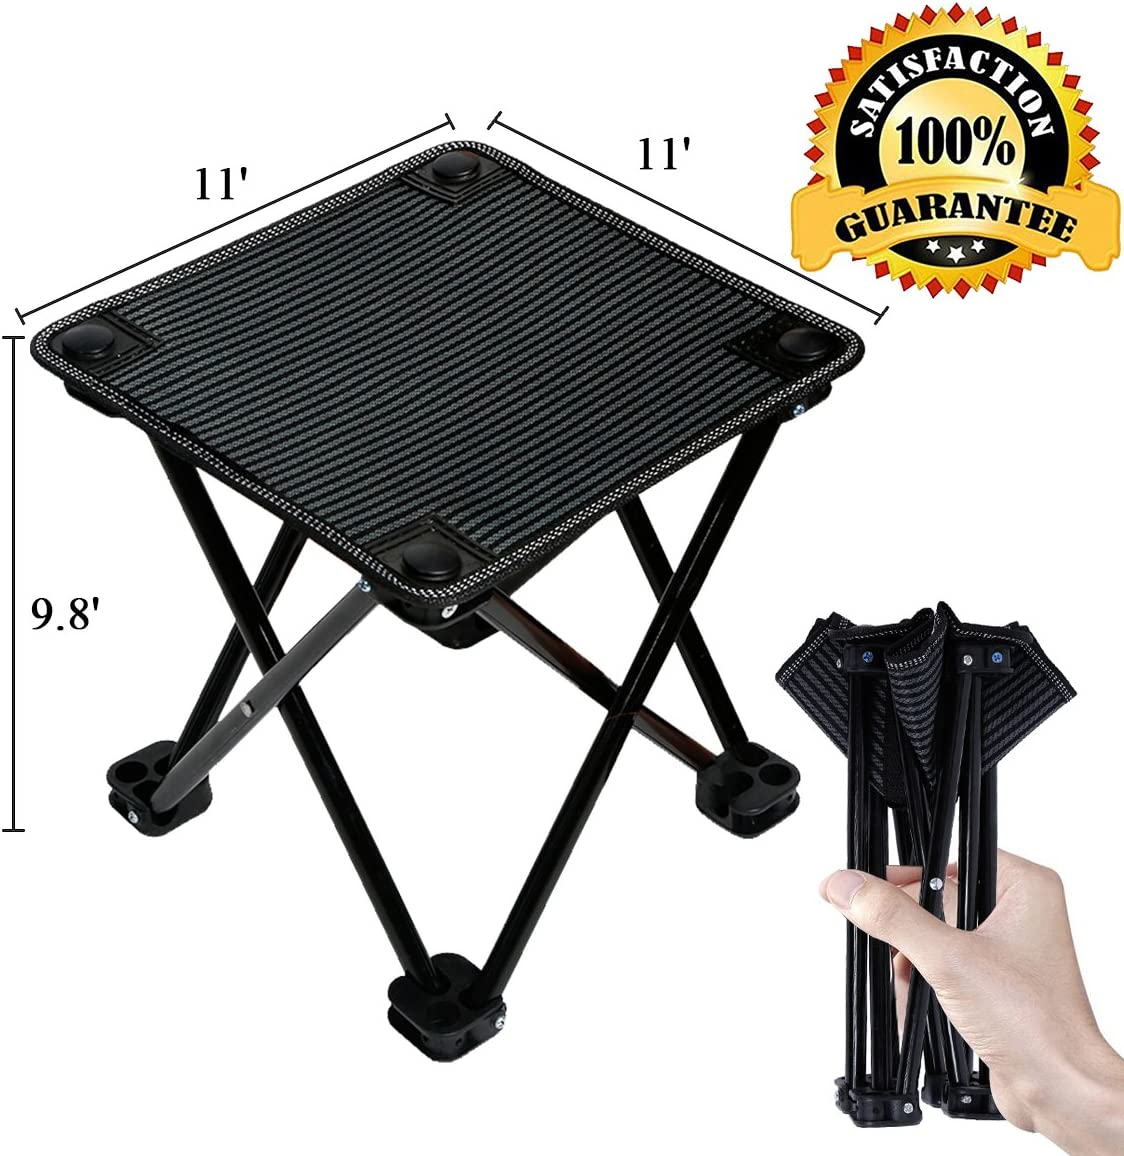 Folding Portable Camping Stool Mini Lightweight Sturdy Collapsible Chair for Camping, Fishing, Hiking, Fishing, Travel, Beach, Picnic with Portable Bag, Black Black-Medium